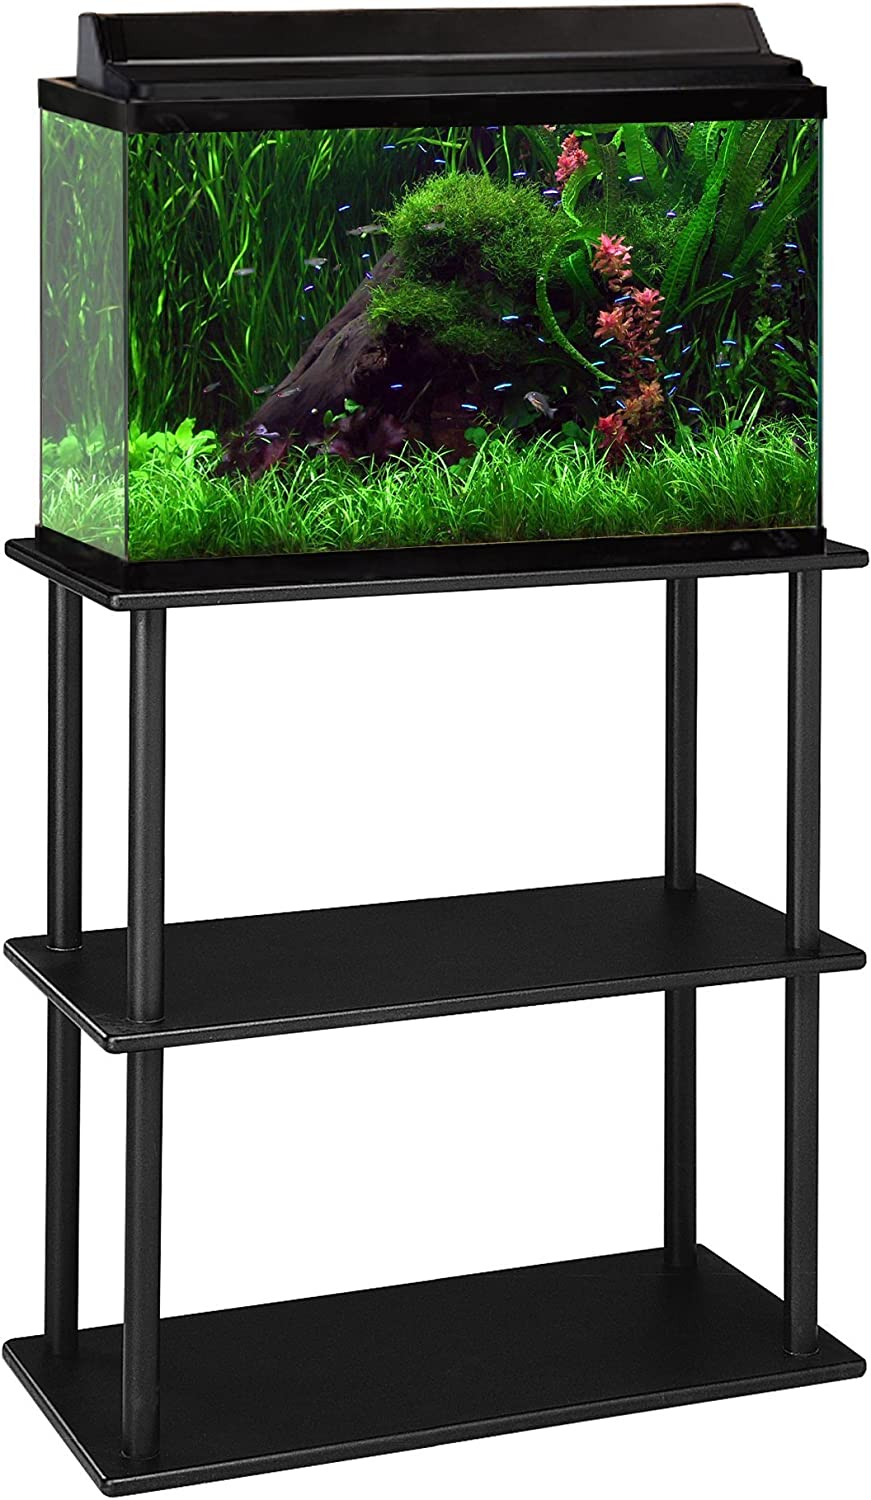 Aquatic Fundamentals 20 Gallon Aquarium Stand